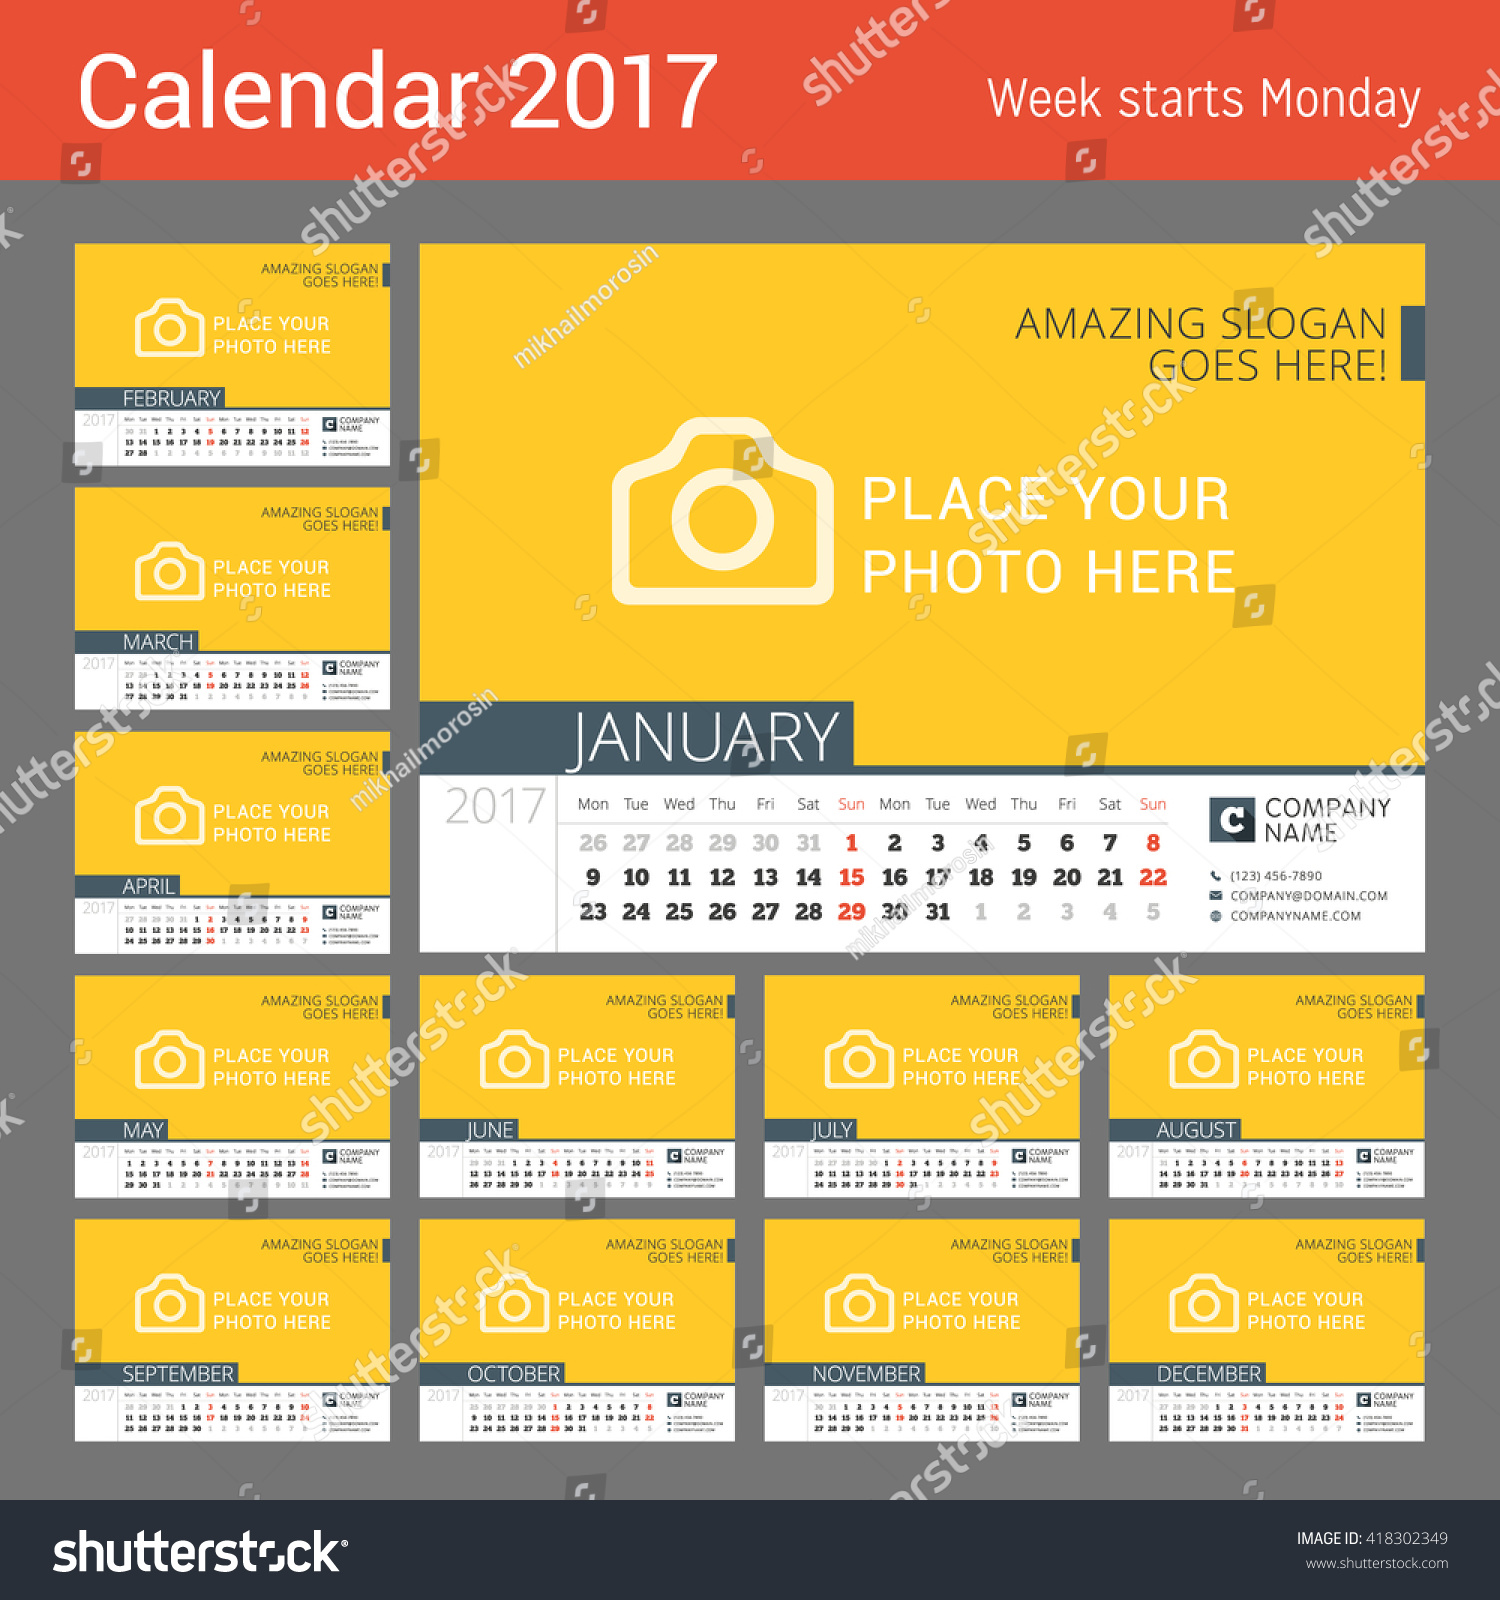 Desk Calendar for 2017 Year Vector Design Print Template with Place for Week